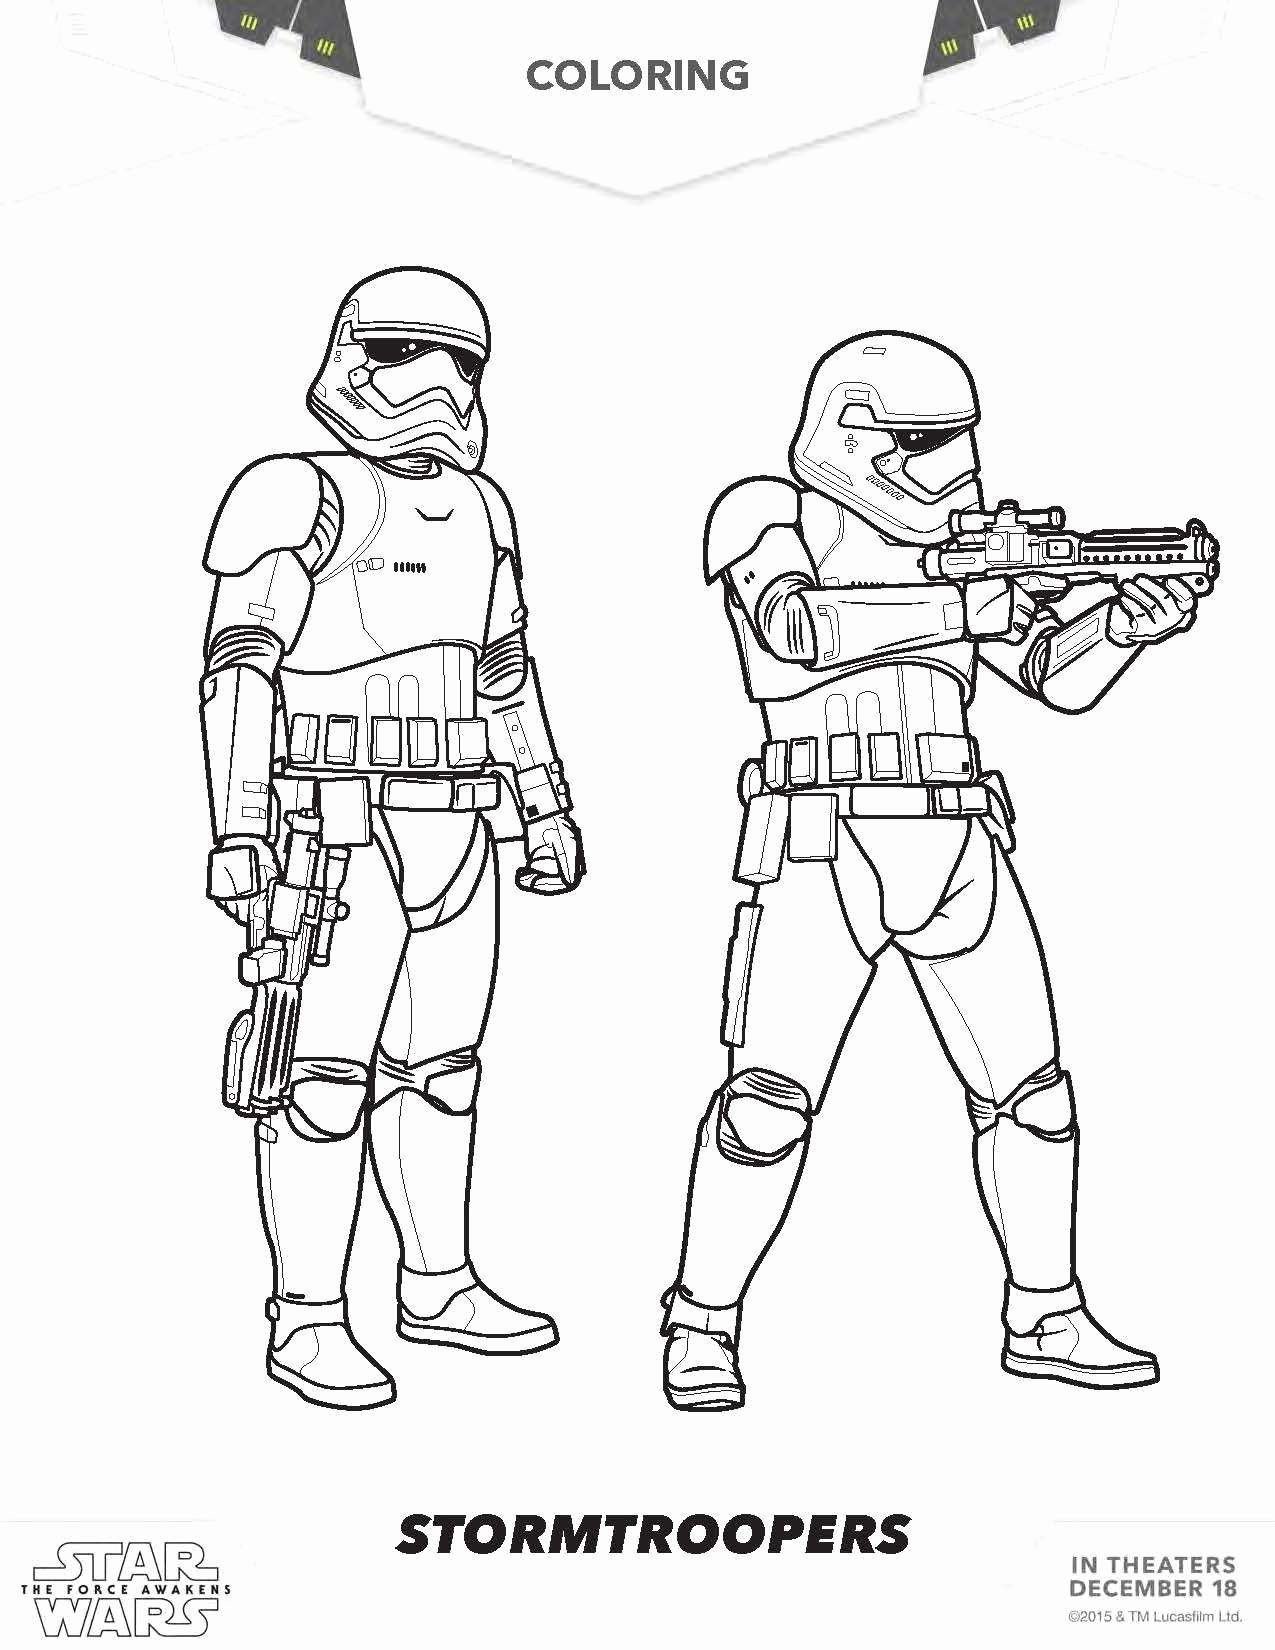 Boba Fett Ausmalbilder Genial Coloring Pages for Boys Star Wars Free Star Wars Malvorlagen Das Neu Stock